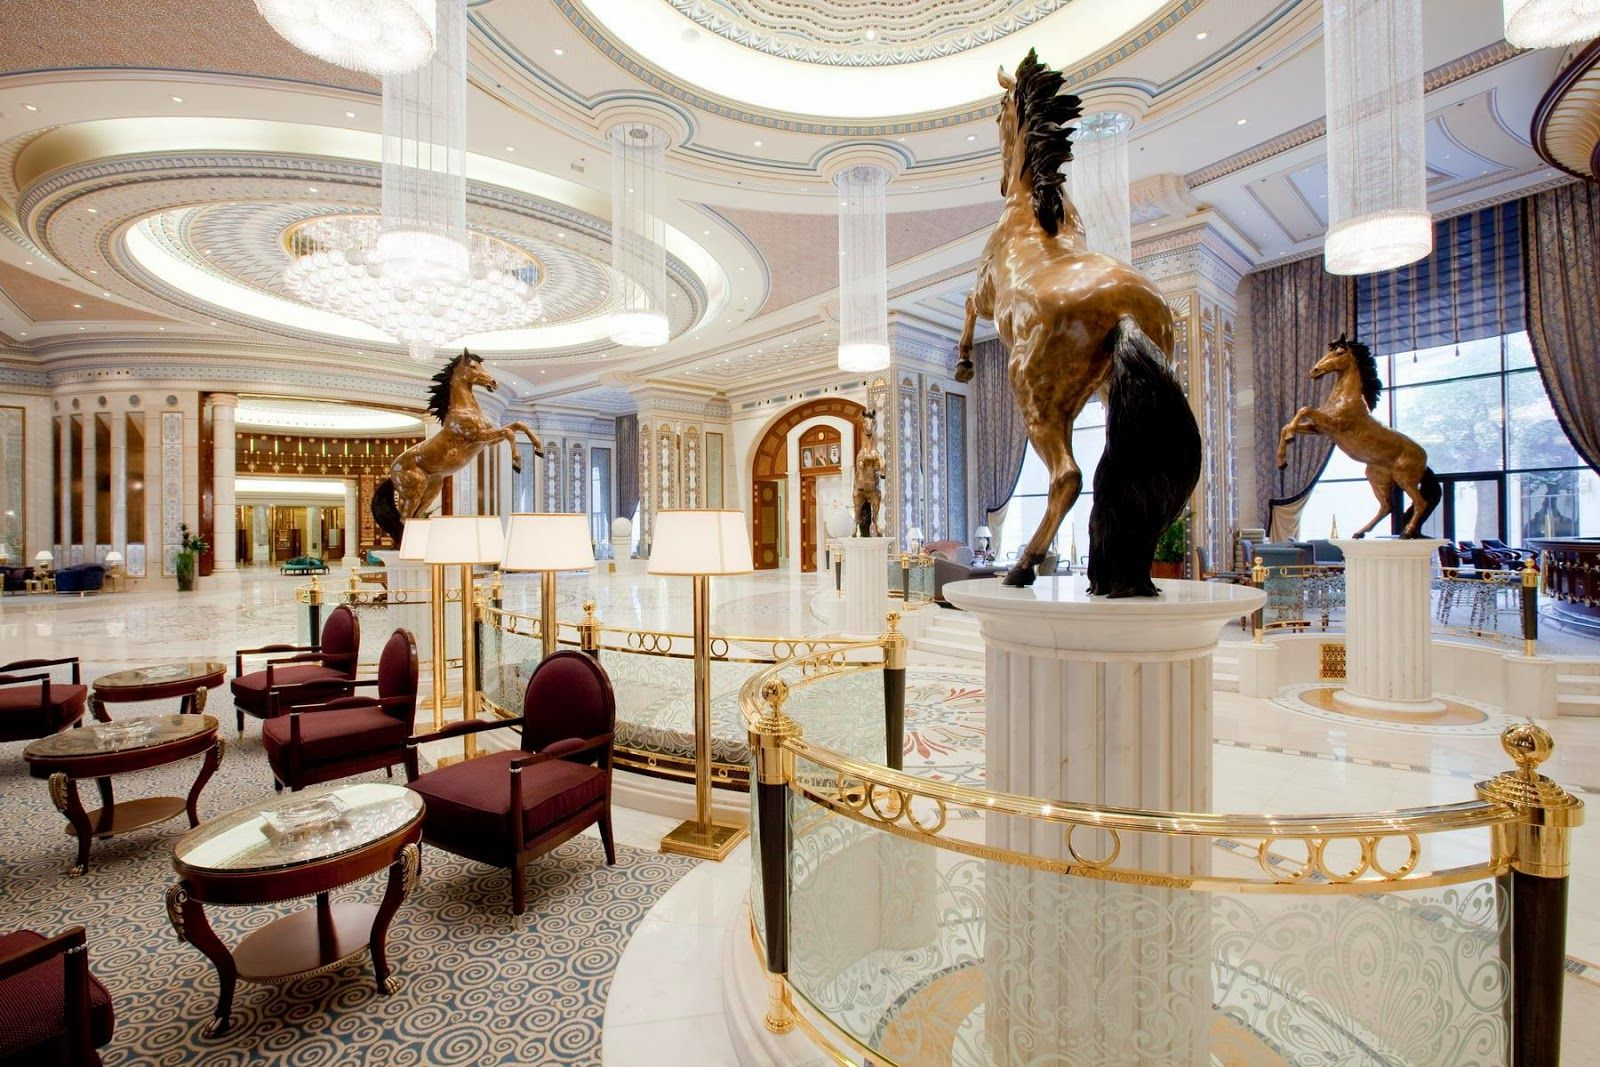 Home Designer Collection the ritz-carlton hotel in riyadh, saudi arabia - home design